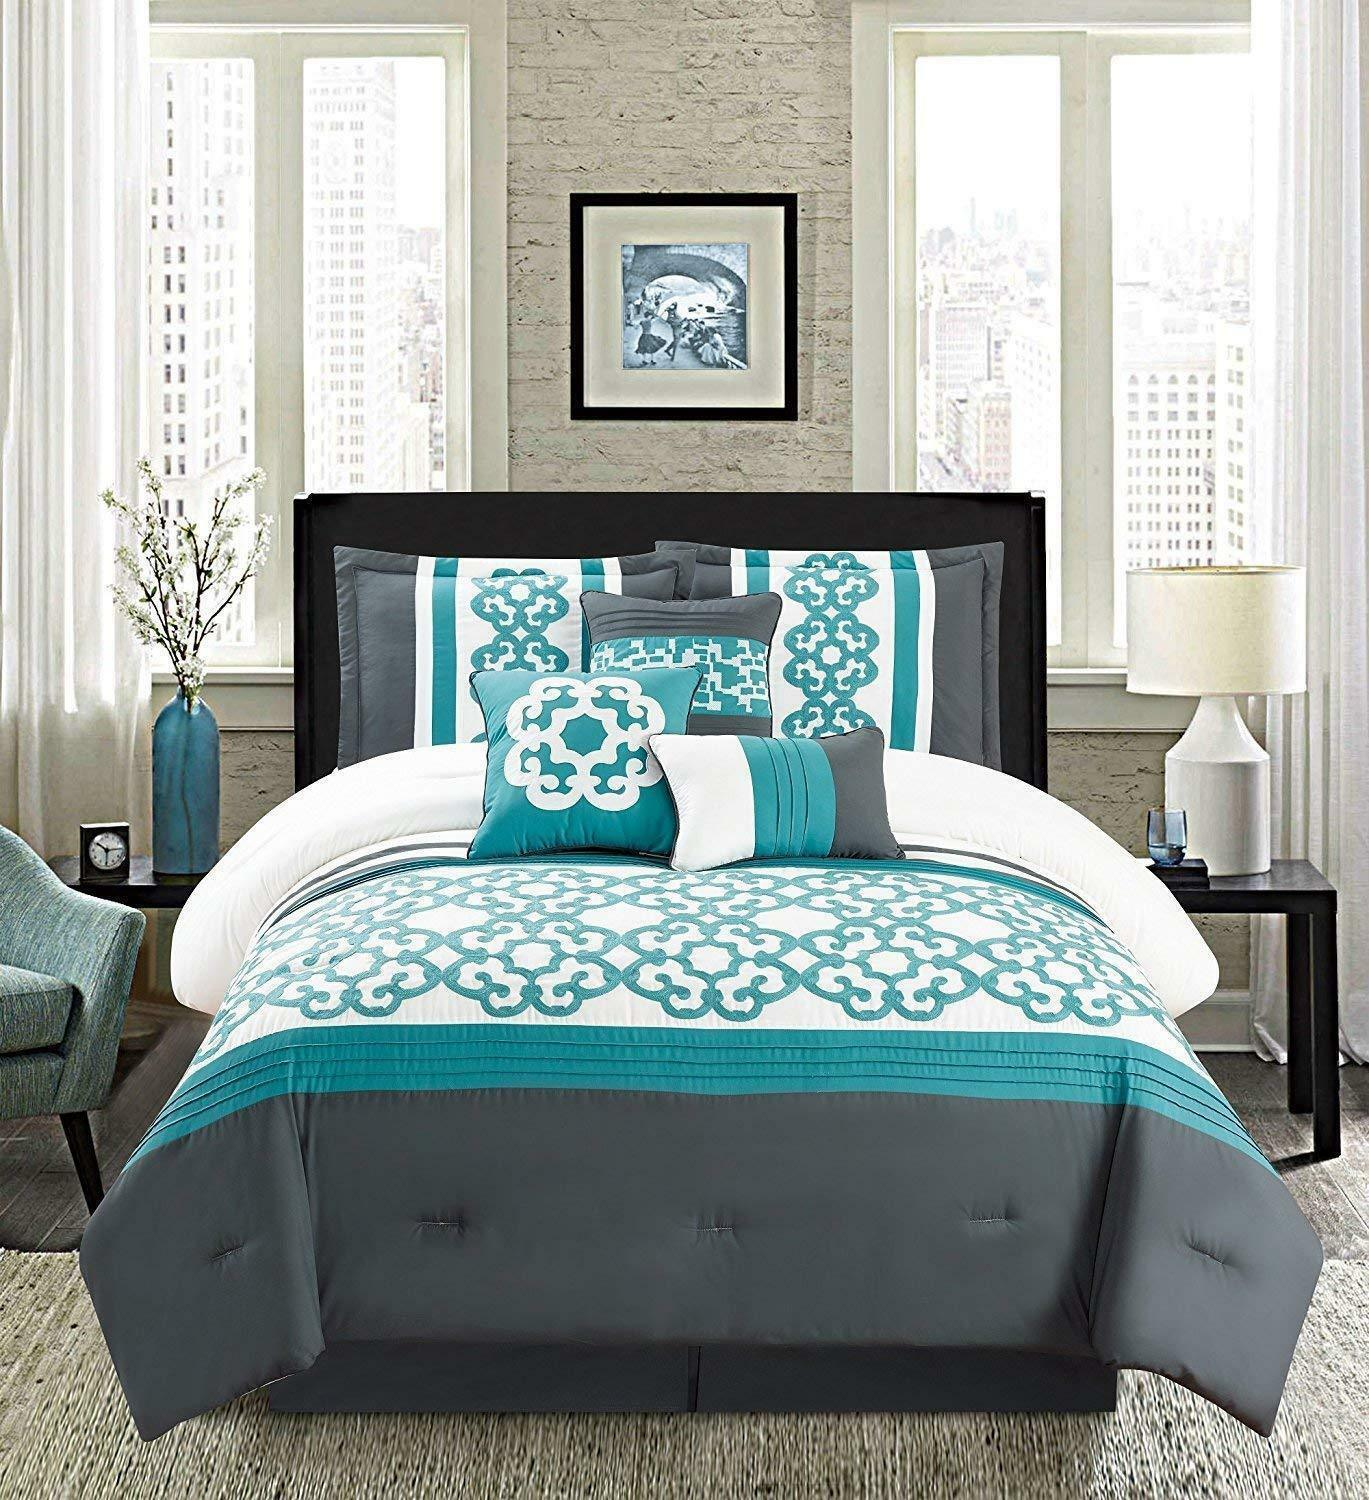 golden Linens Turquoise White 7 Pcs Embroidery Comforter Se